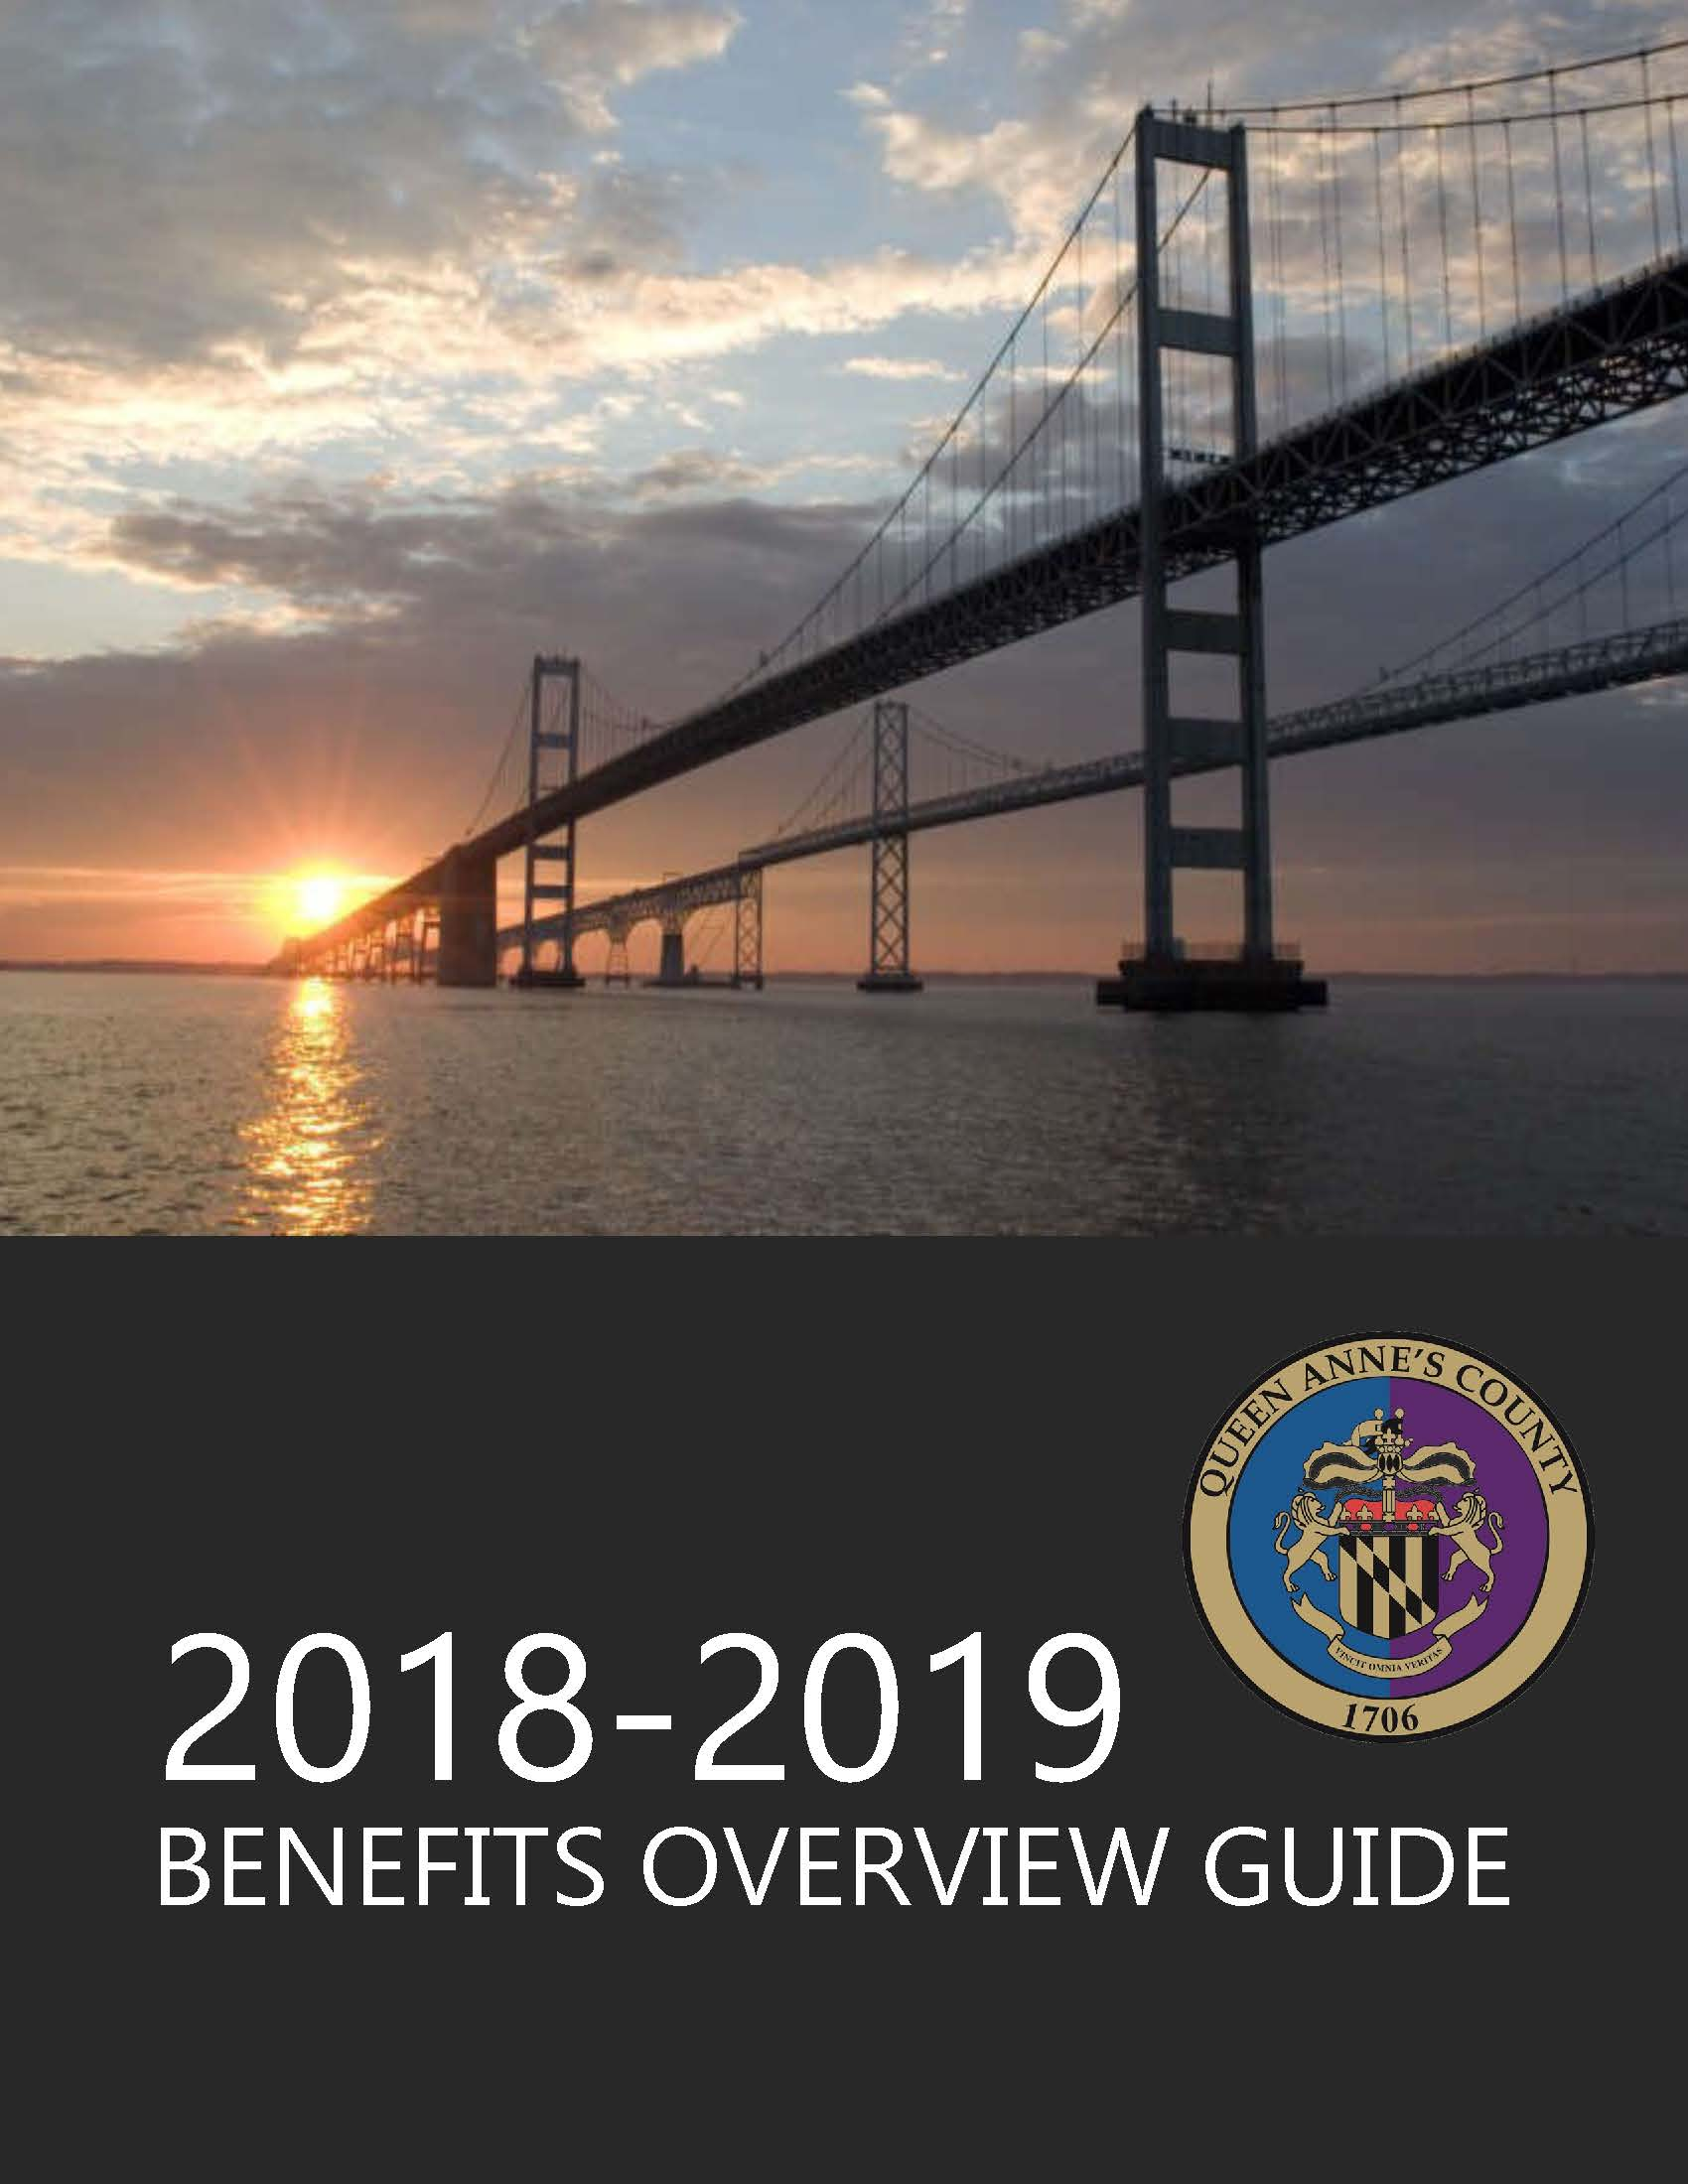 QACG Benefit Guide 2018-19 upd 10022018_Page_01